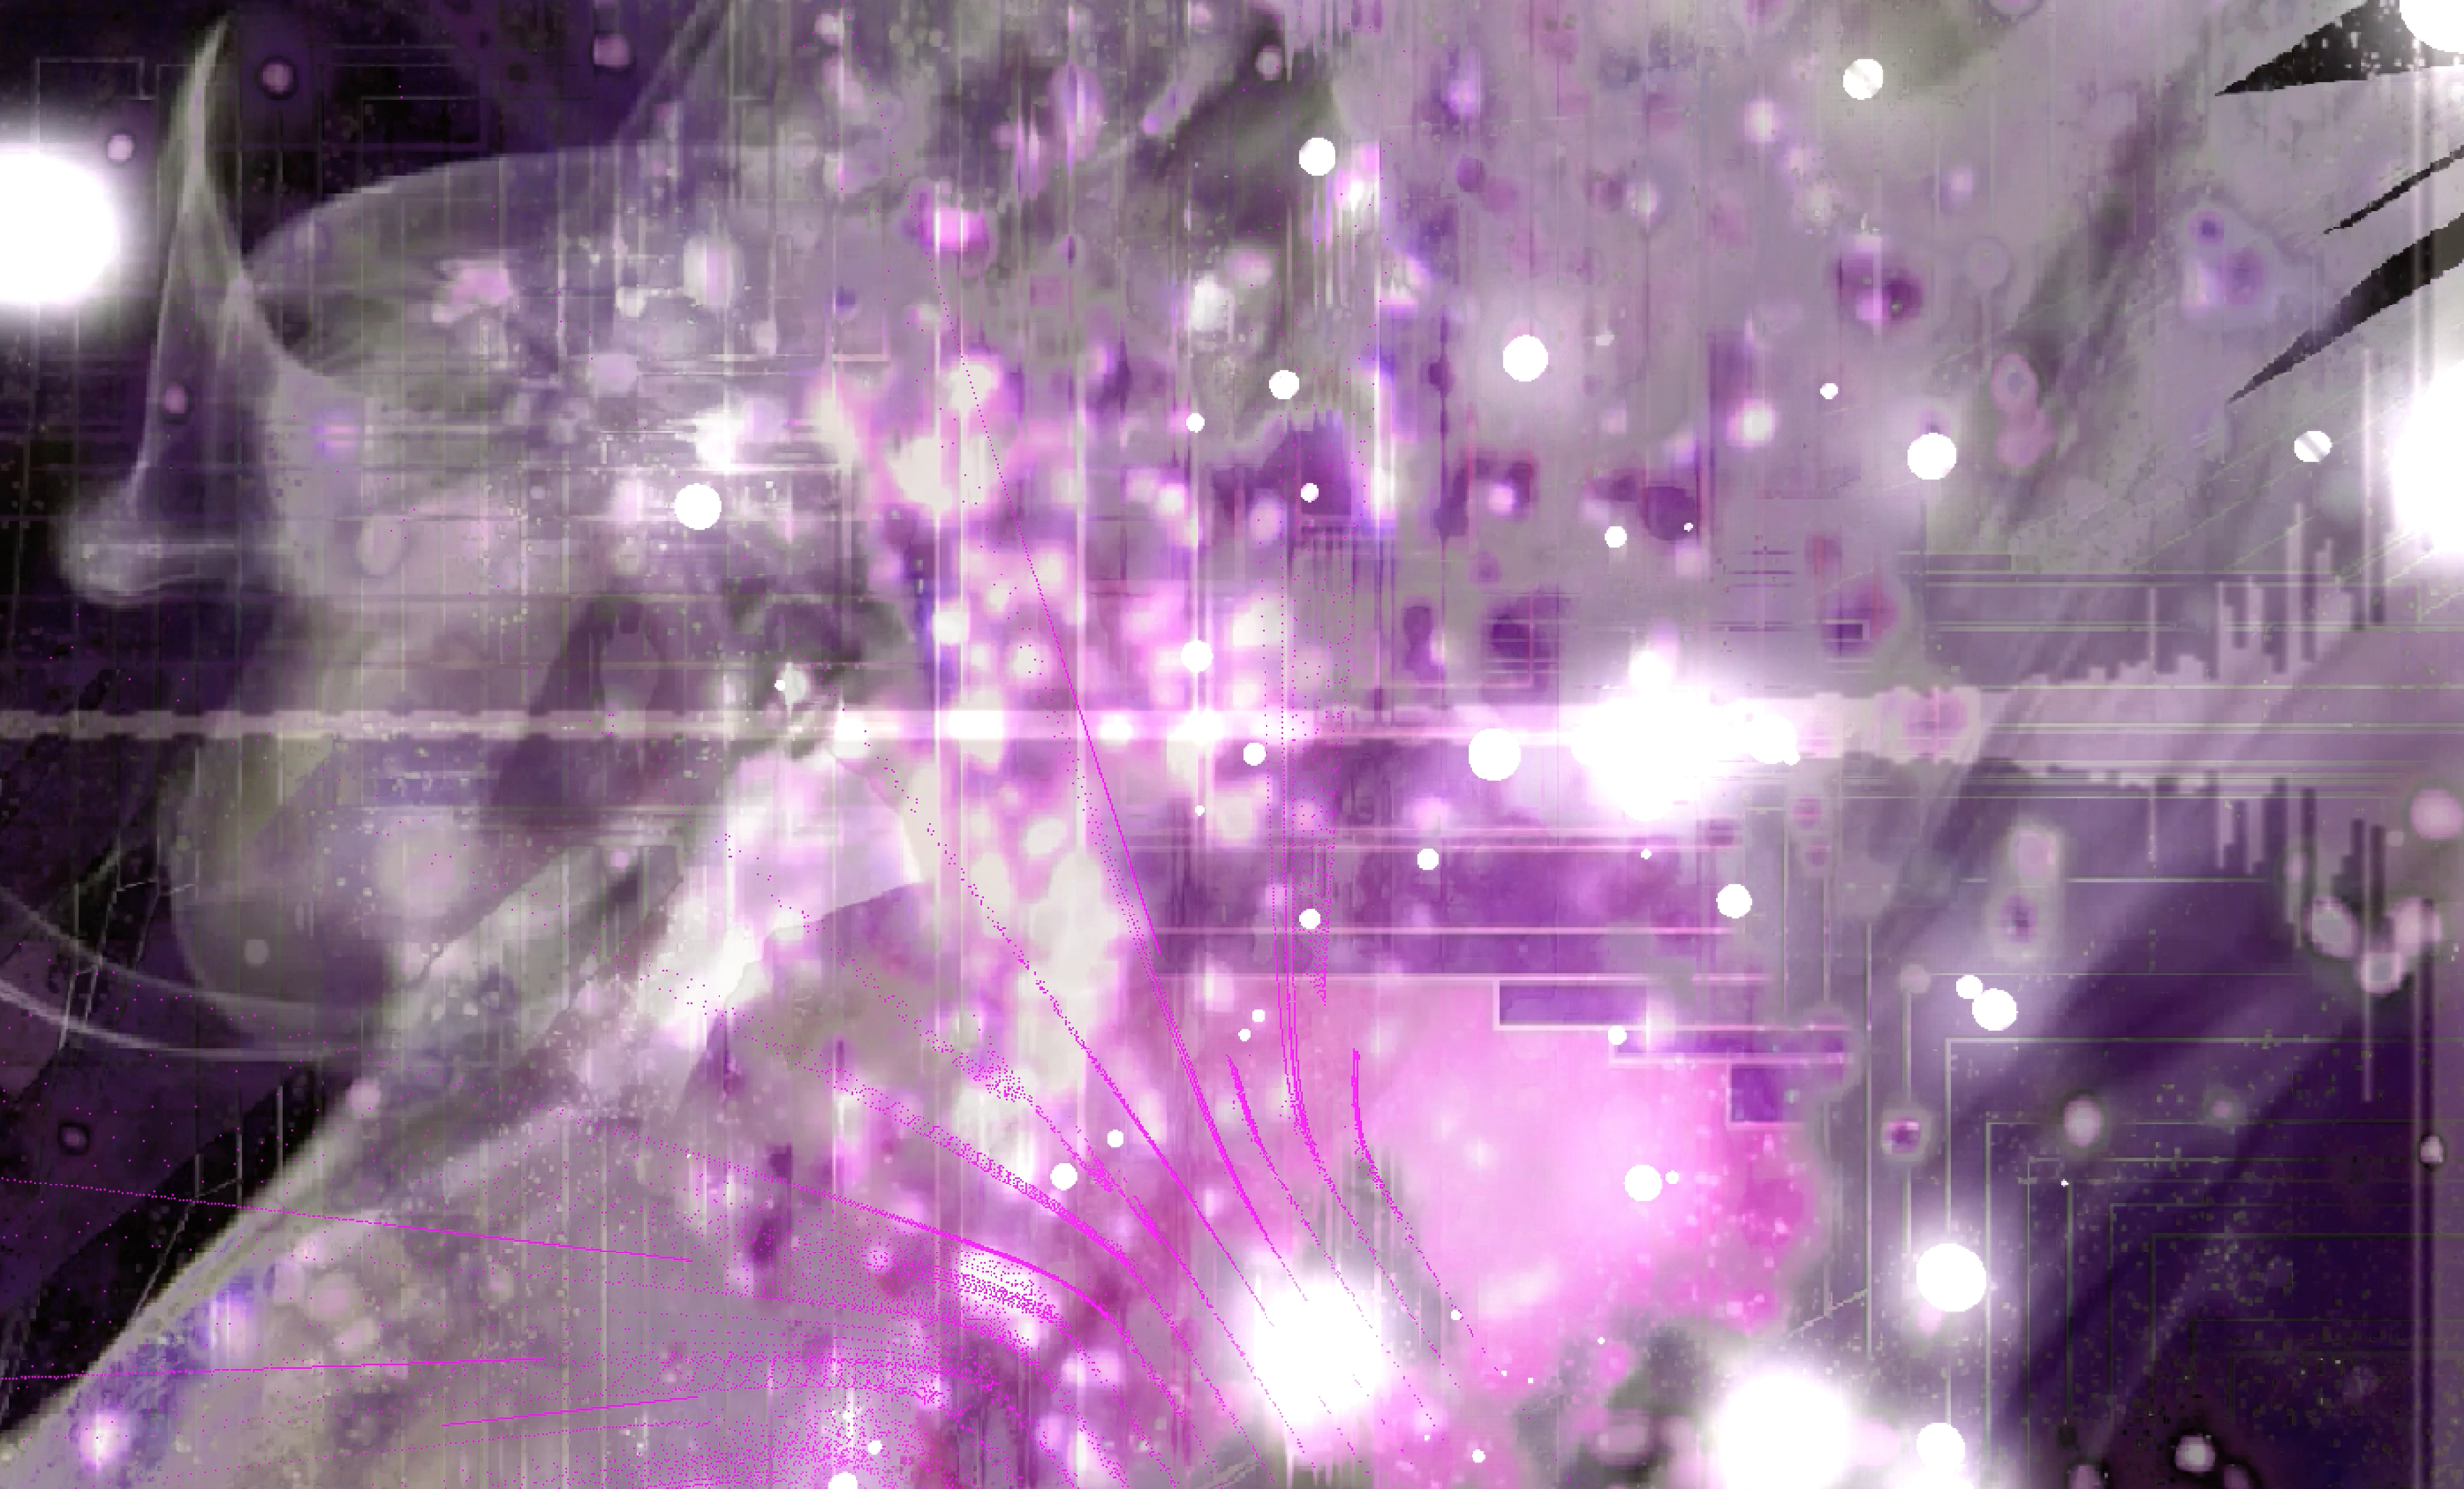 Visual Content Generated for Projection  Generated using Photoshop, p5.js, Final Cut Pro X, MAX/MSP/Jitter